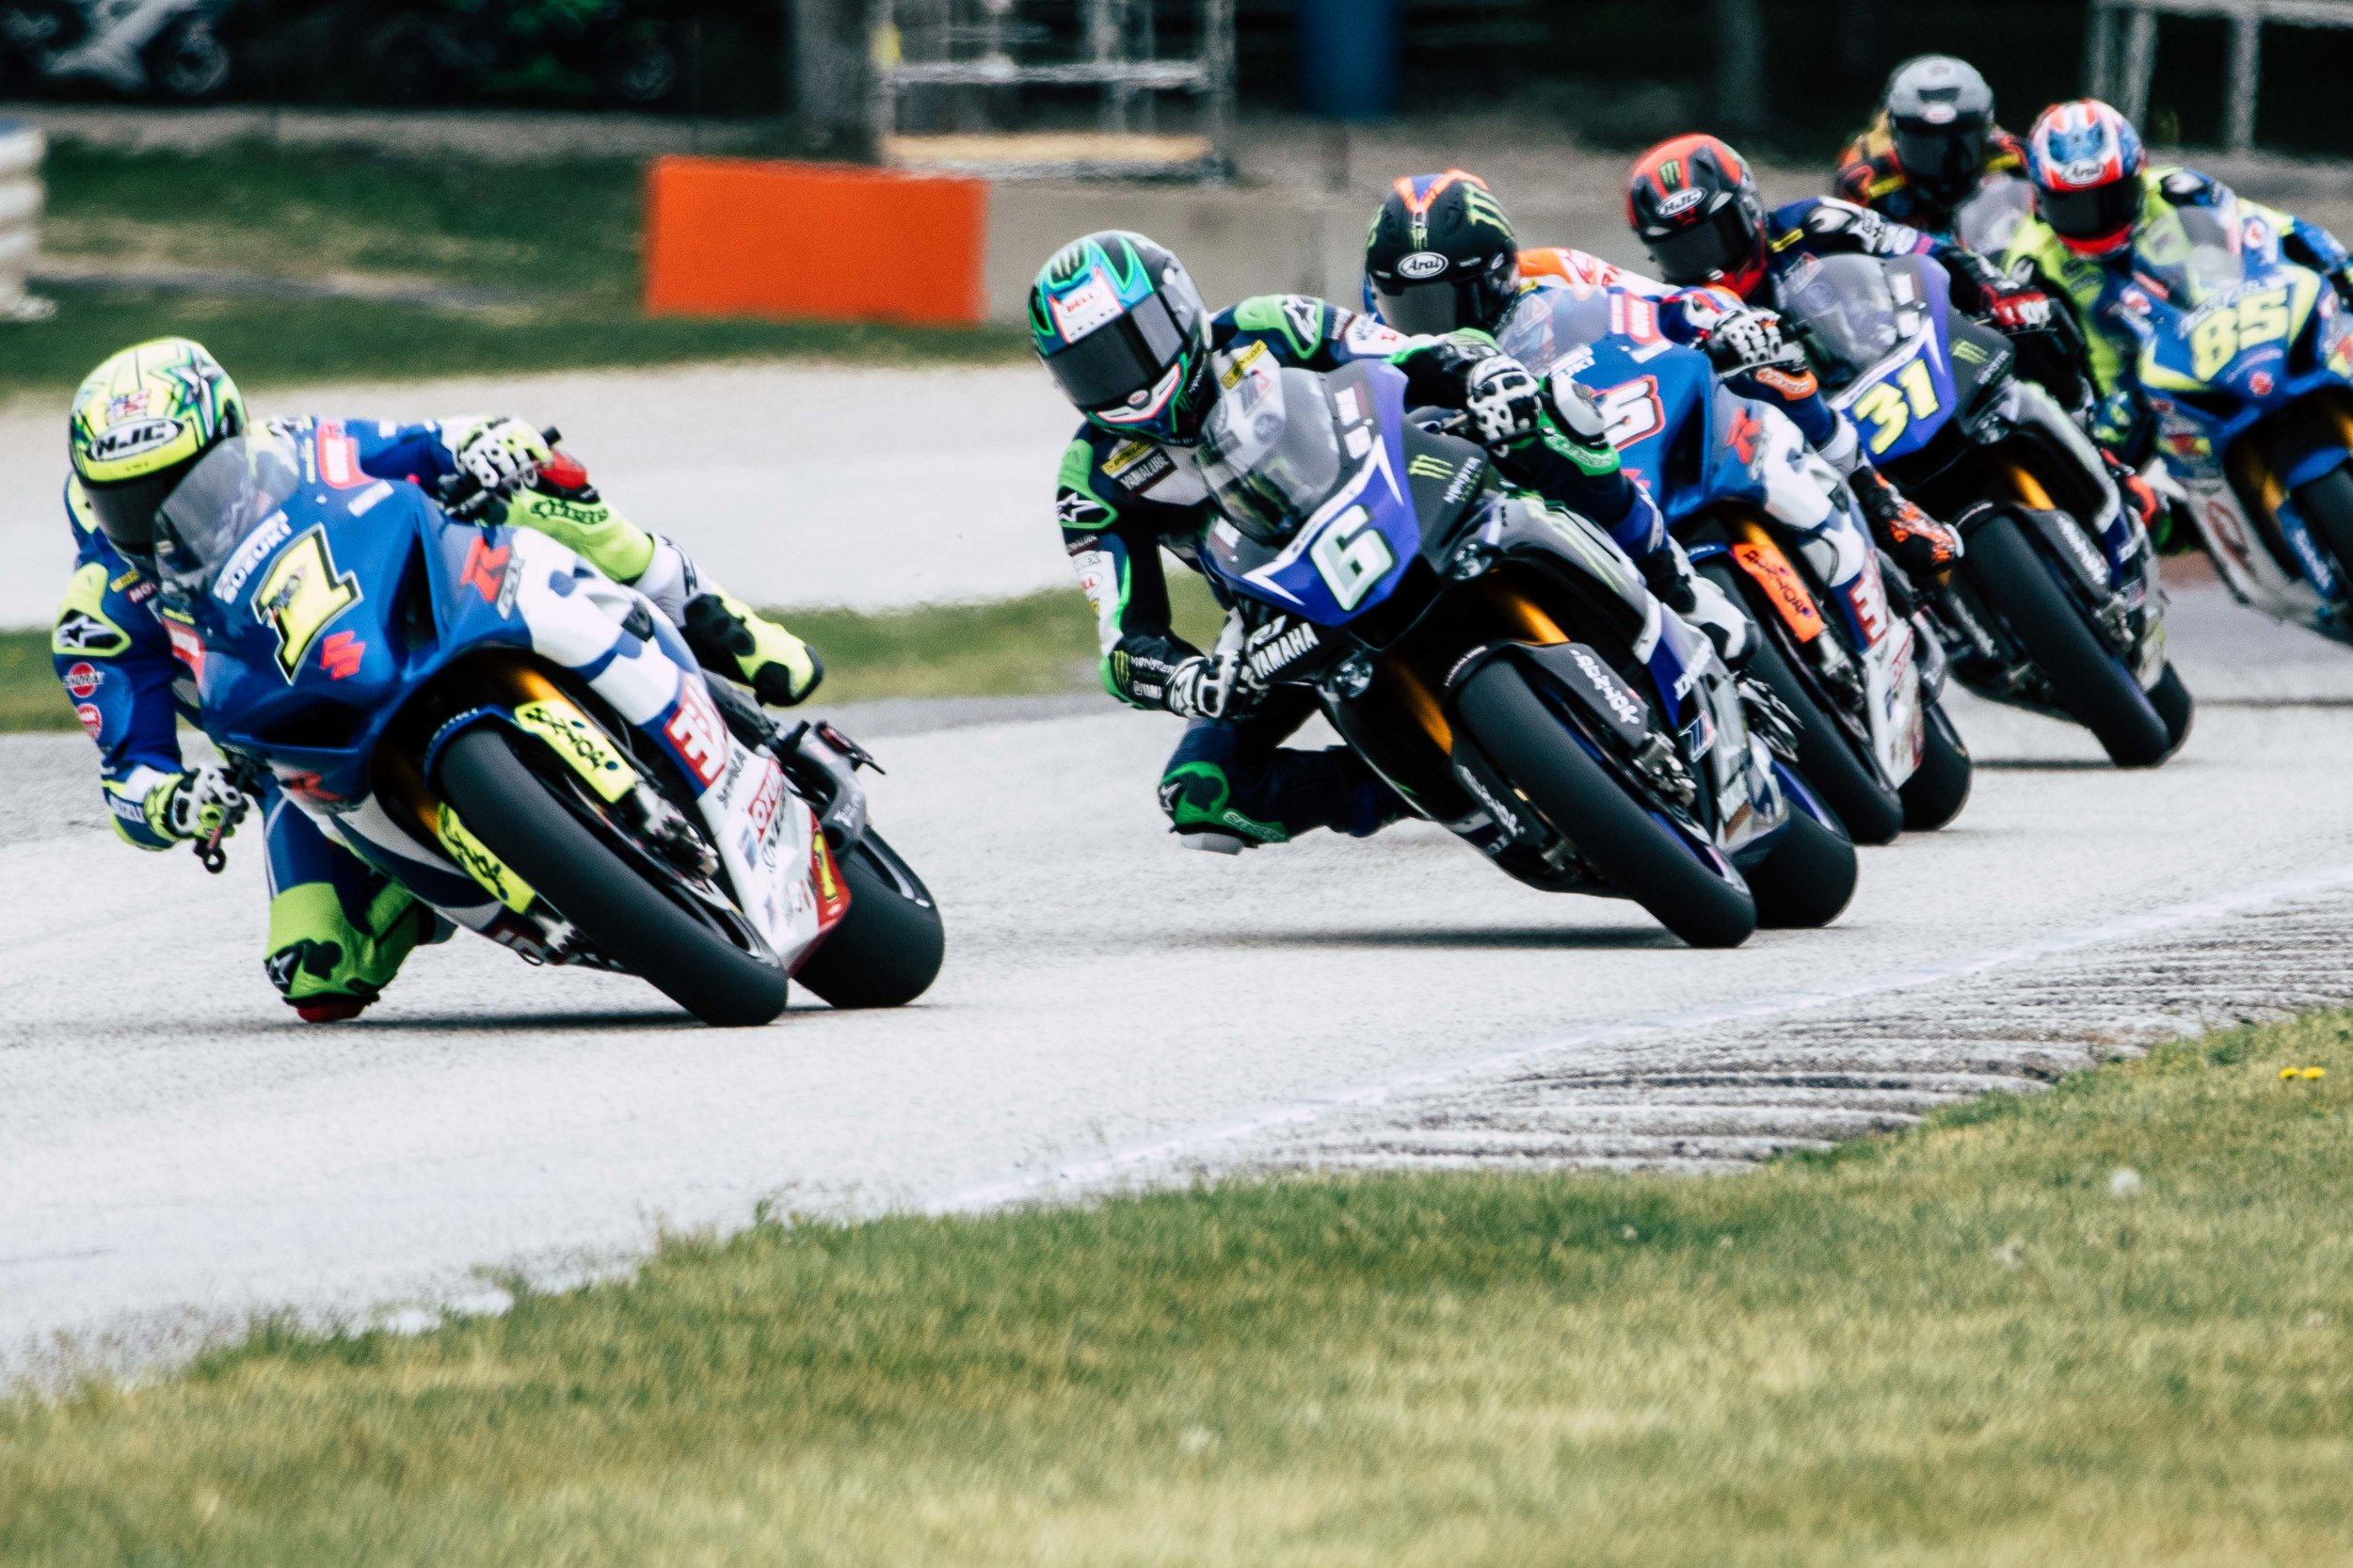 Toni Elias leading the pack into turn 7 at Road America.  (  @ToniElias24  )